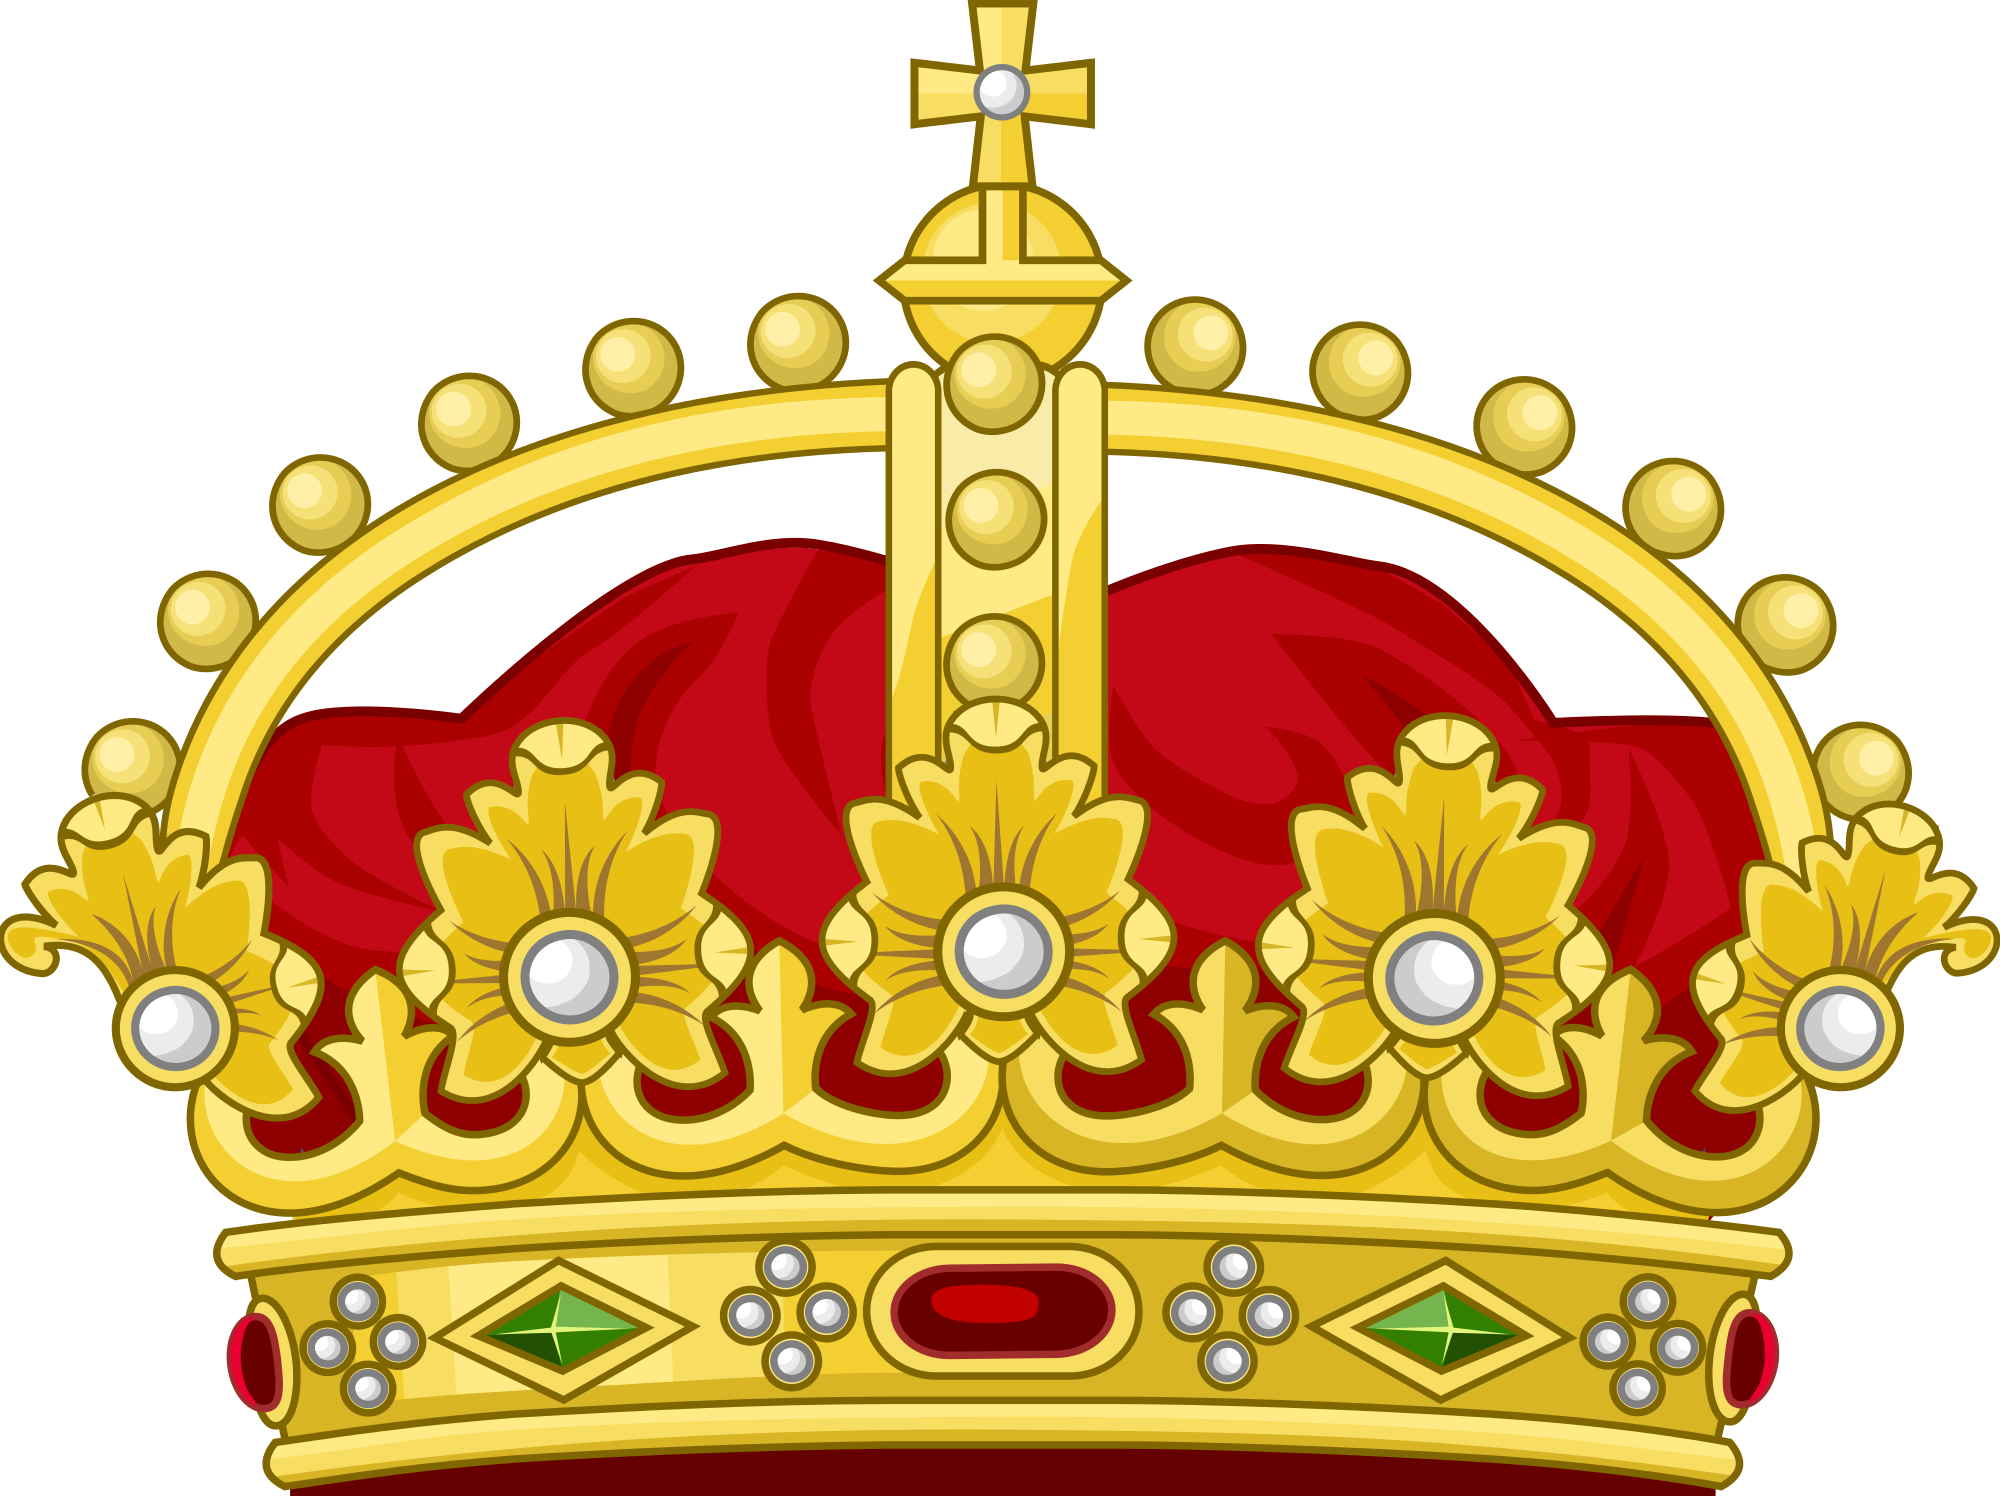 Crown red clipart jpg royalty free stock Gold And Red Crown Png Cartoon With Diamonds jpg royalty free stock